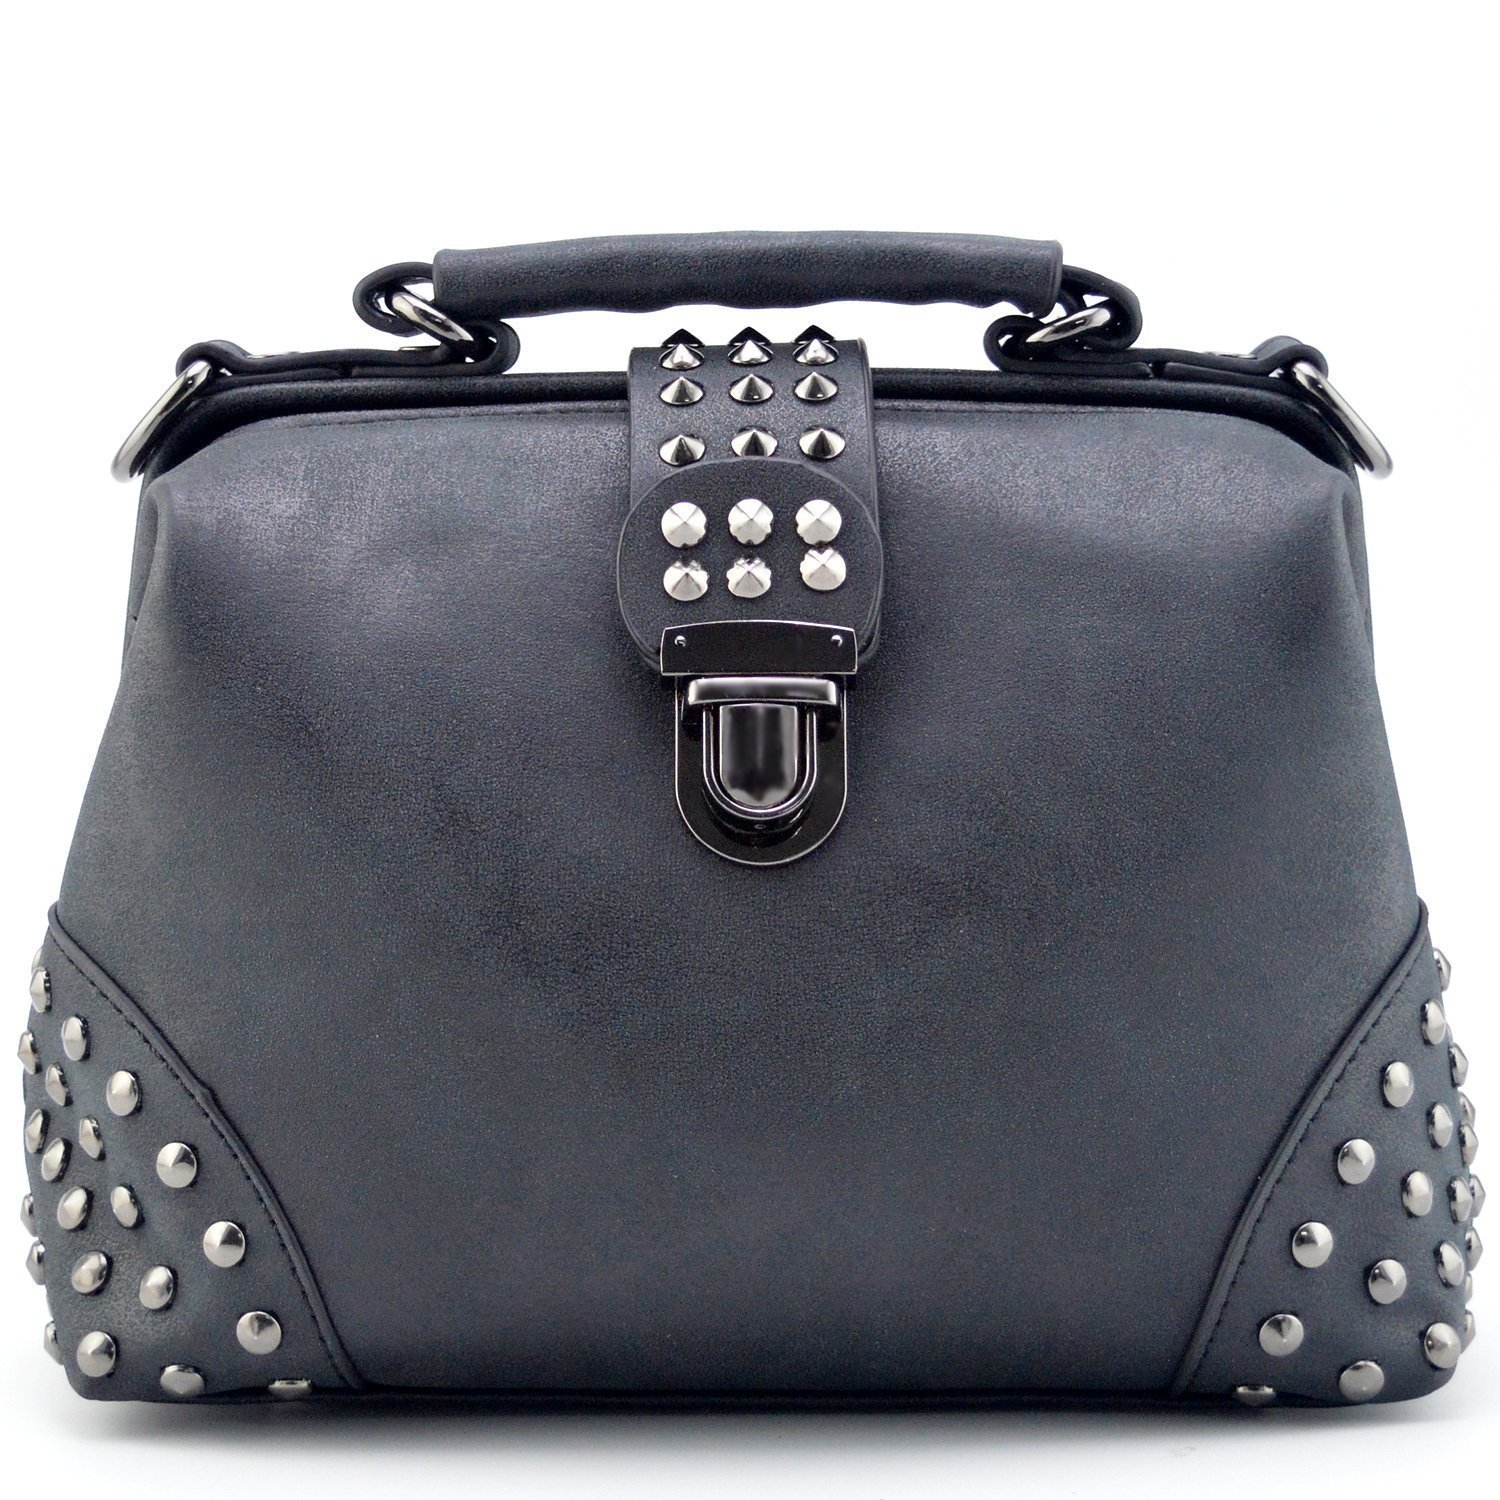 1931ffe44943 Mn&Sue Gothic Rivet Studded Vintage Doctor Style Purse Shoulder Cross Body  Bag Women Top Handle Handbag